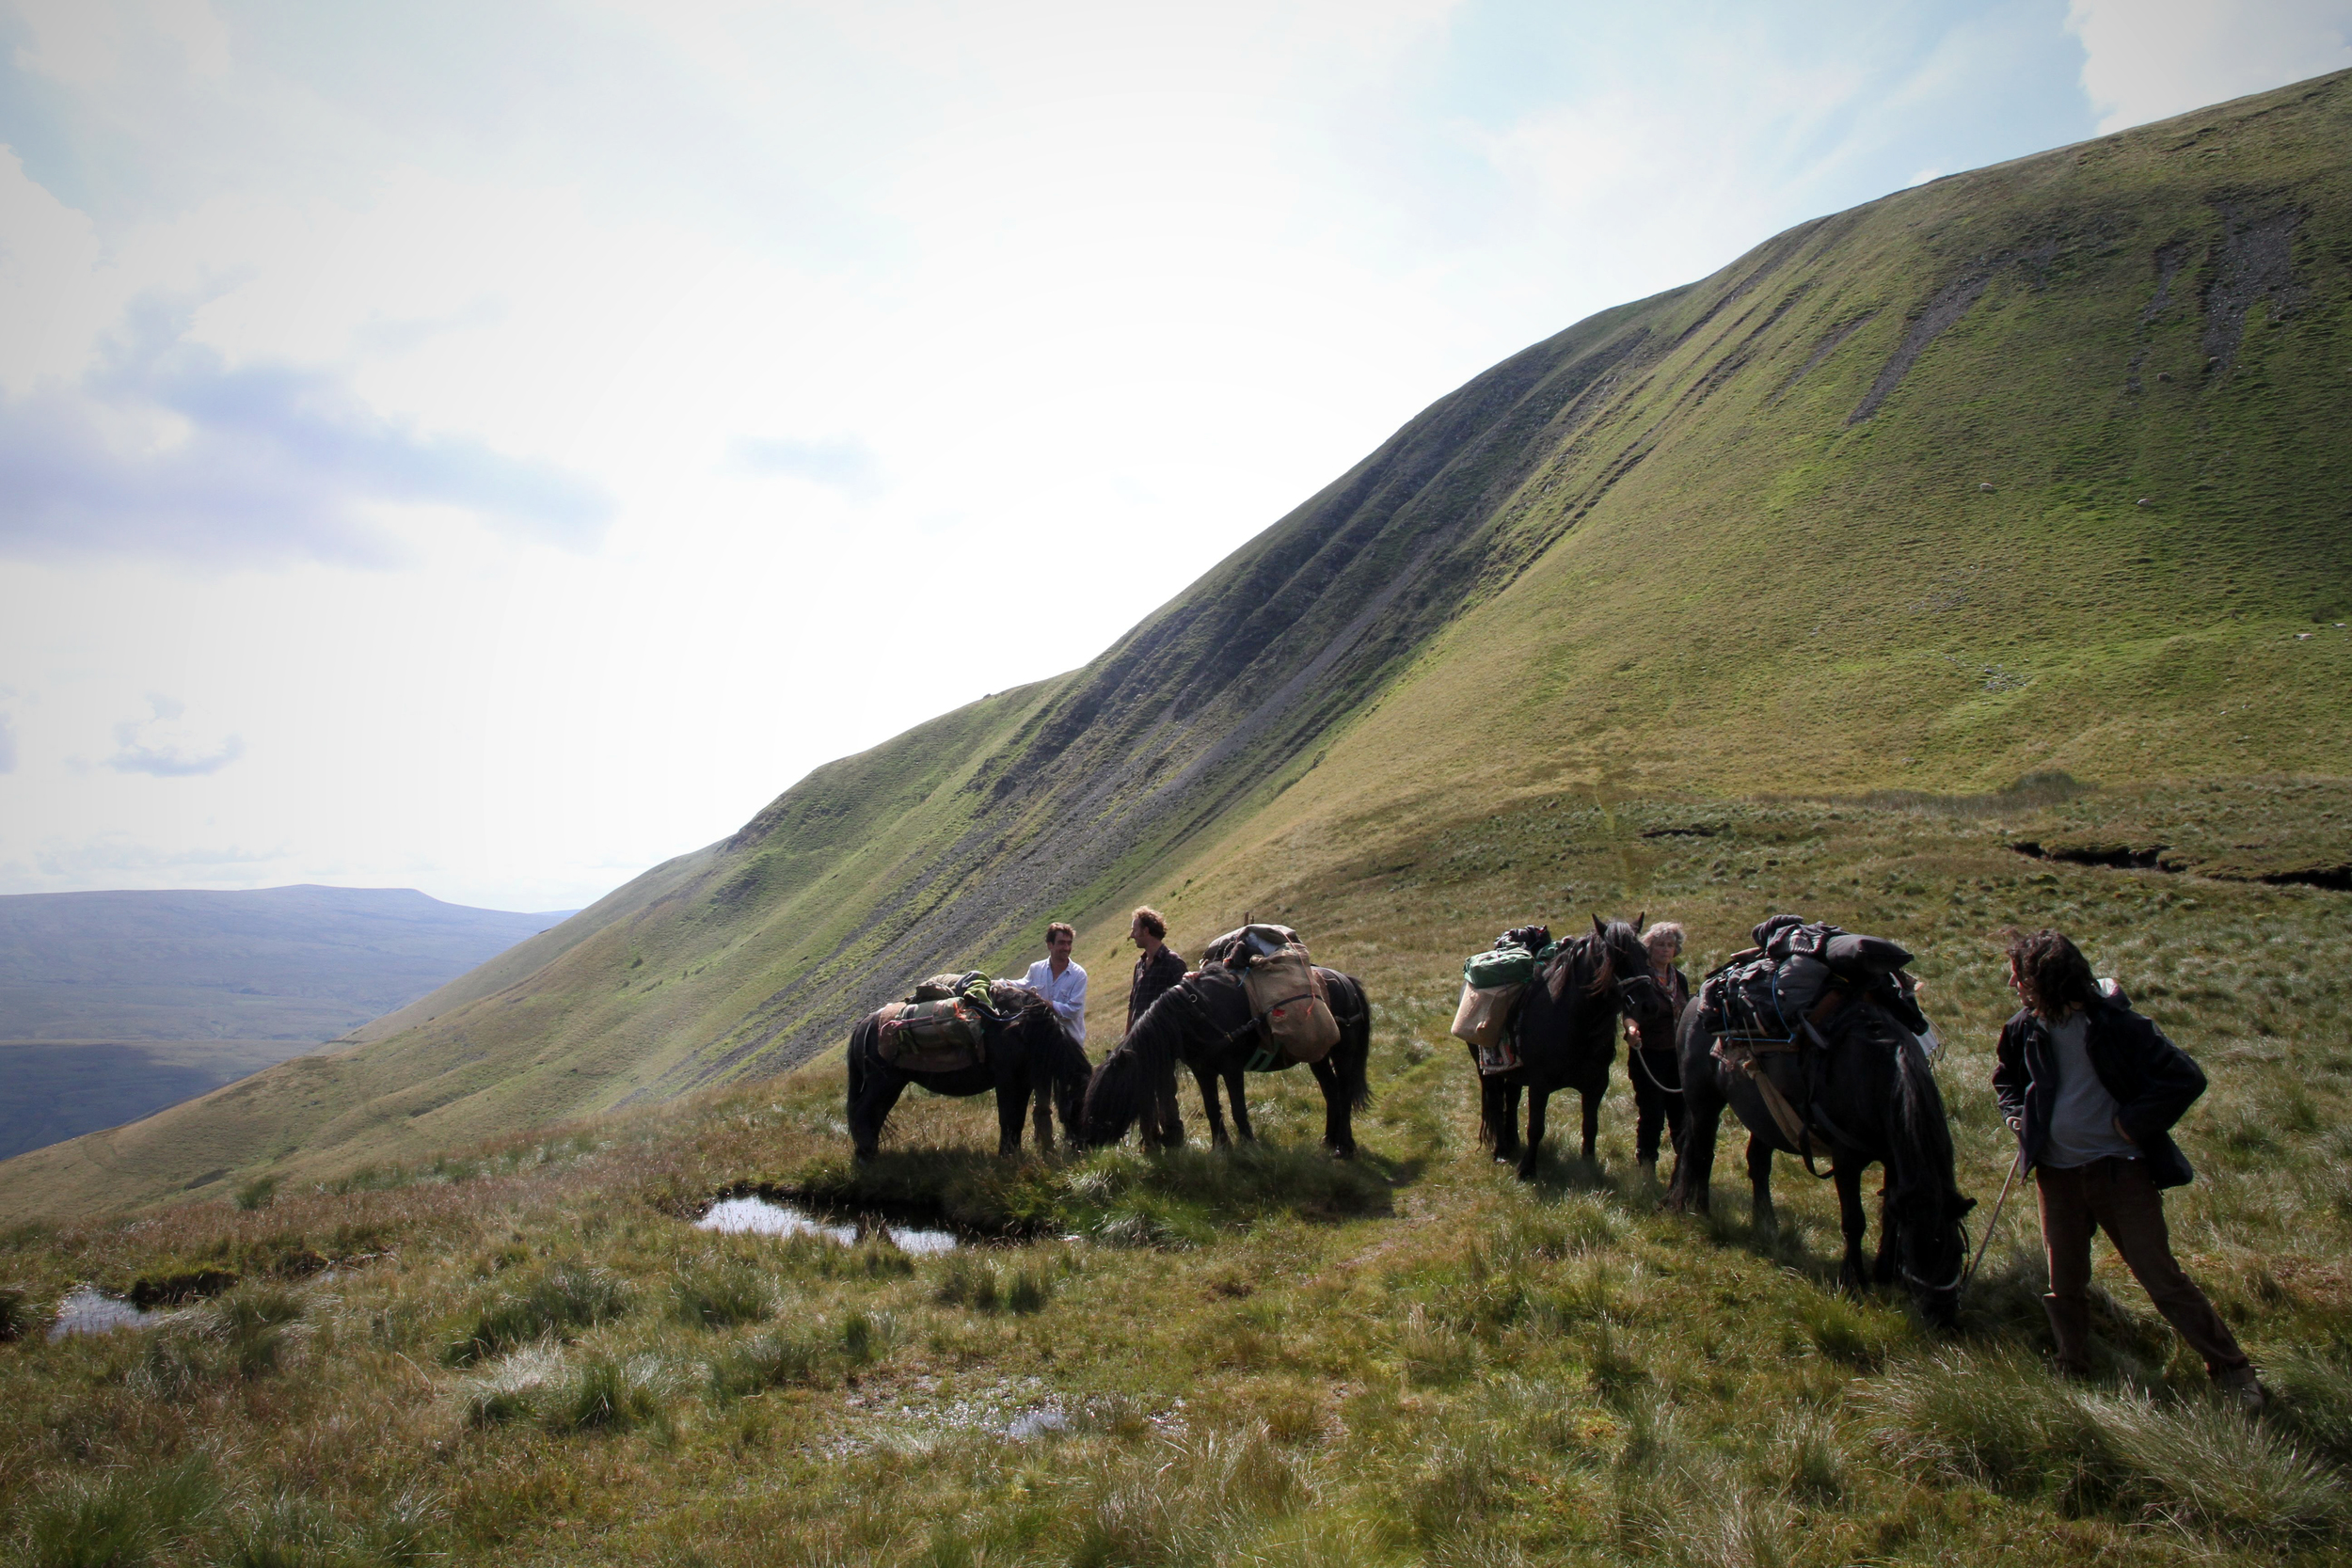 Pack Pony train. Photo taken on Yarlside, Ravenstonedale Common, Howgill Fells 2011. Hades Hill Baby Boo, Abs (unregistered), Hades Hill Pat ll, Hades Hill Patience